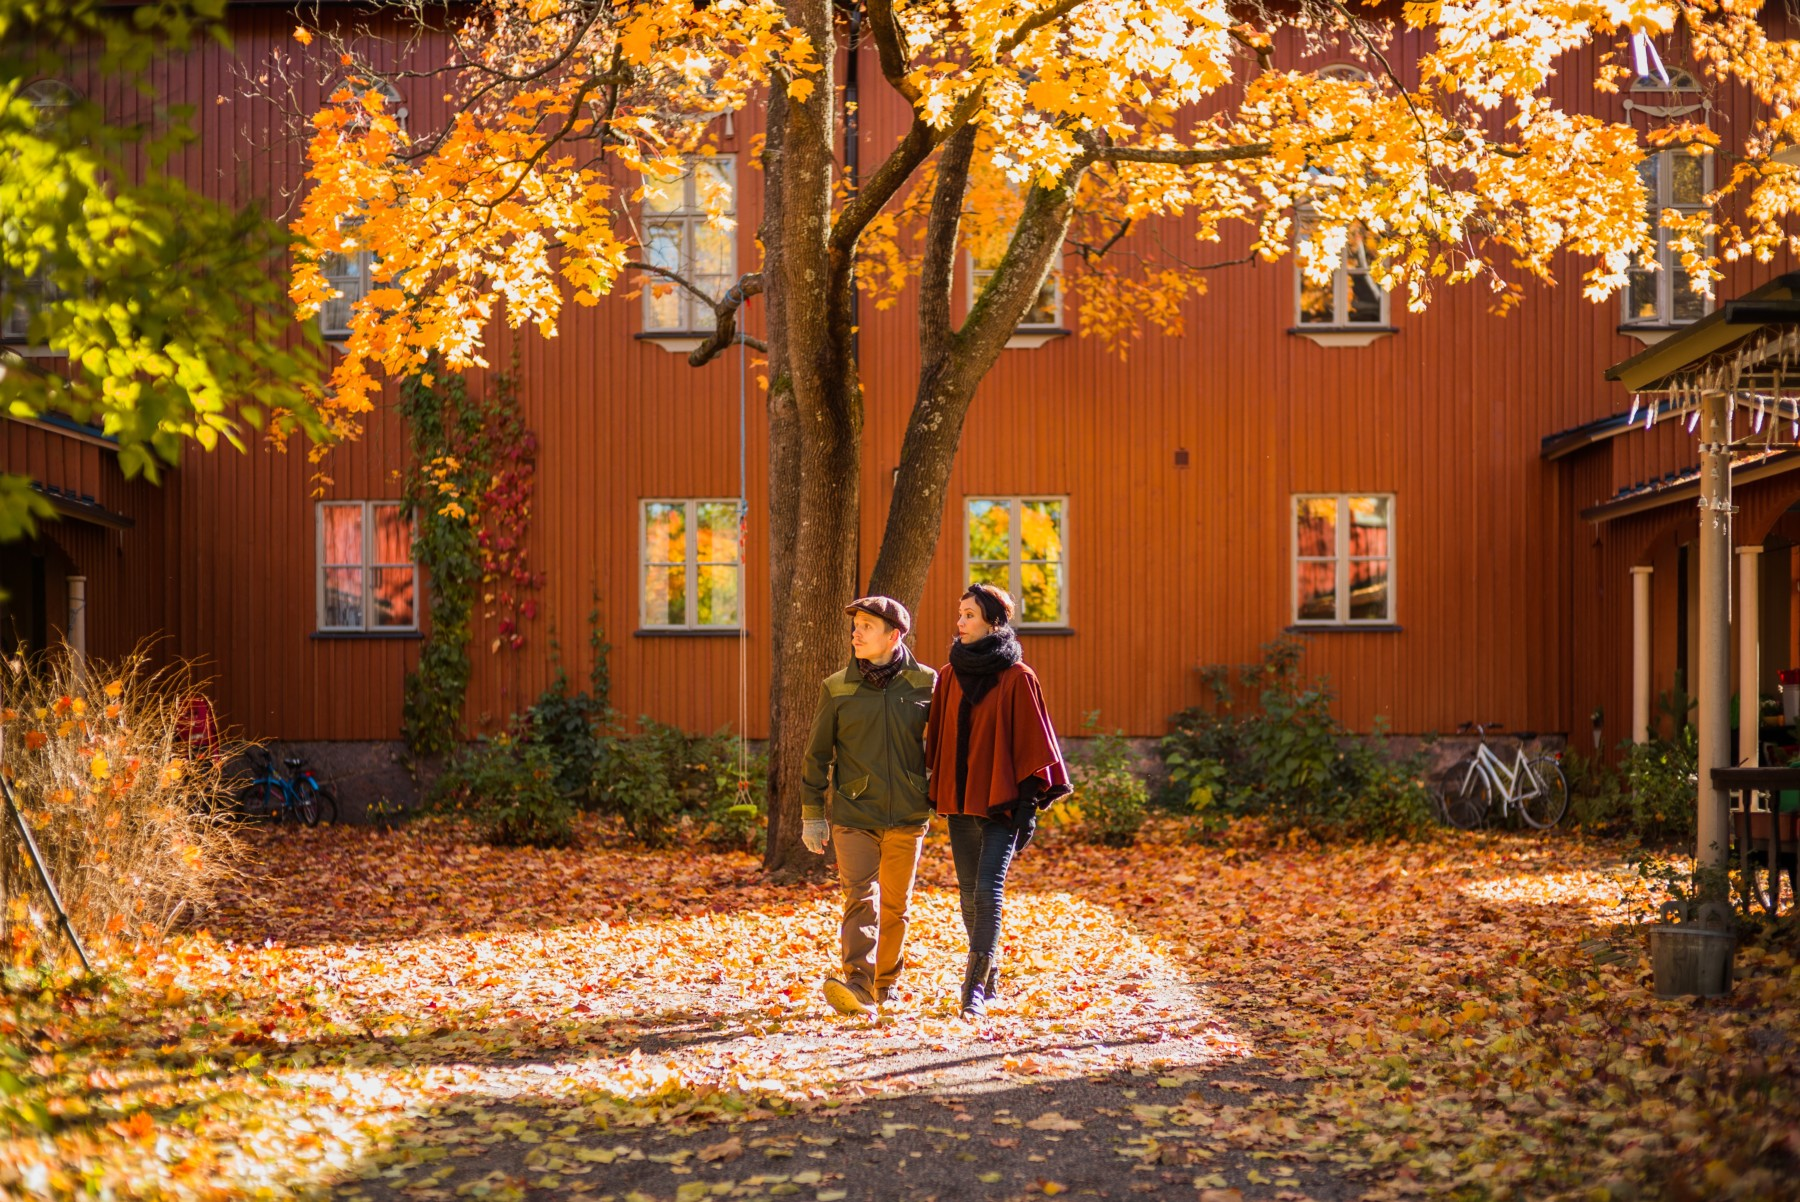 Make a move and experience life in Finland...